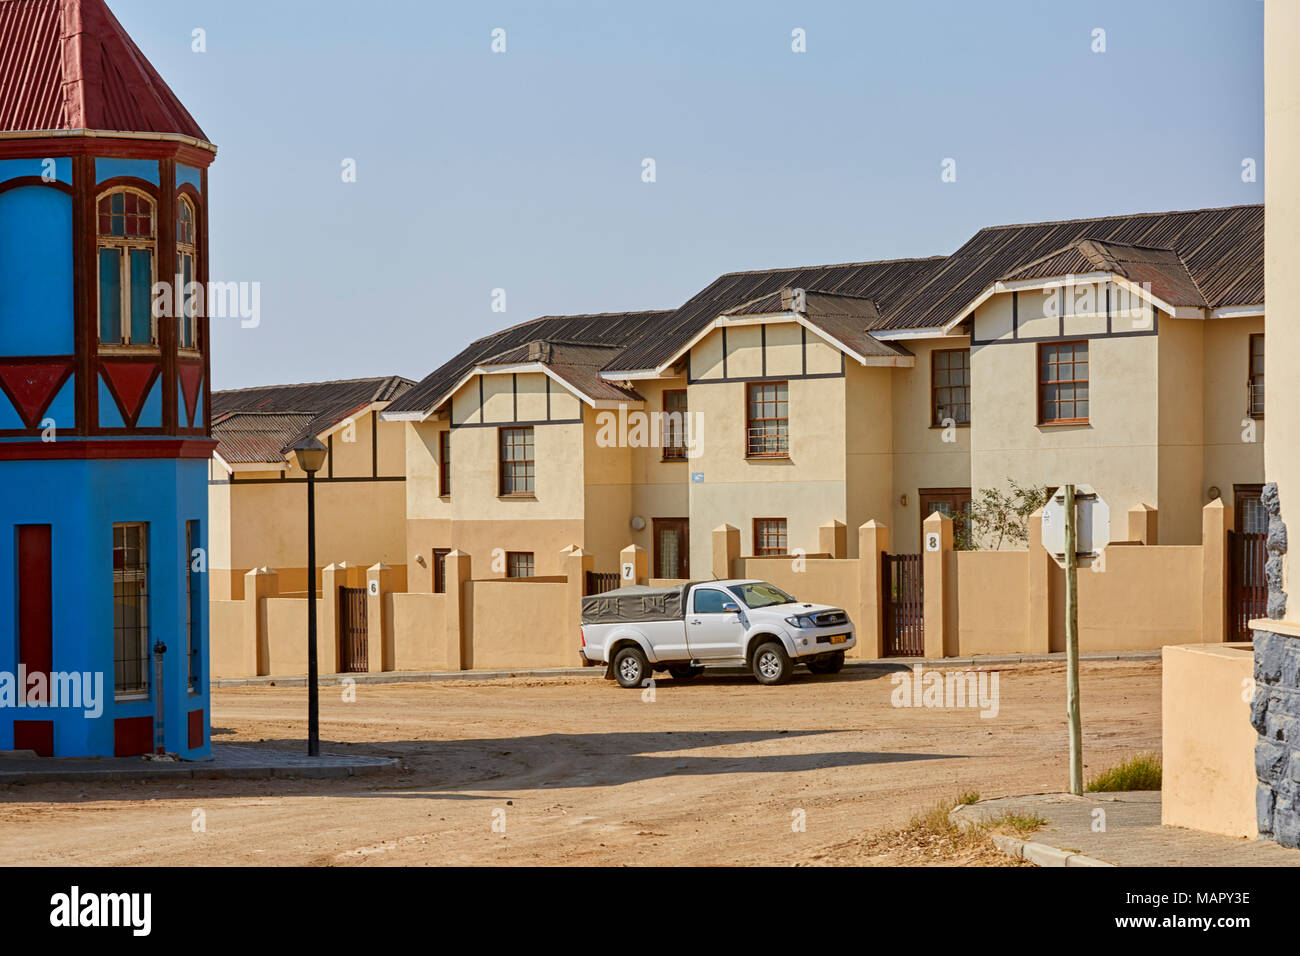 Kirch Street and Berk street in Luderitz with colonial architecture, Namibia, Africa - Stock Image